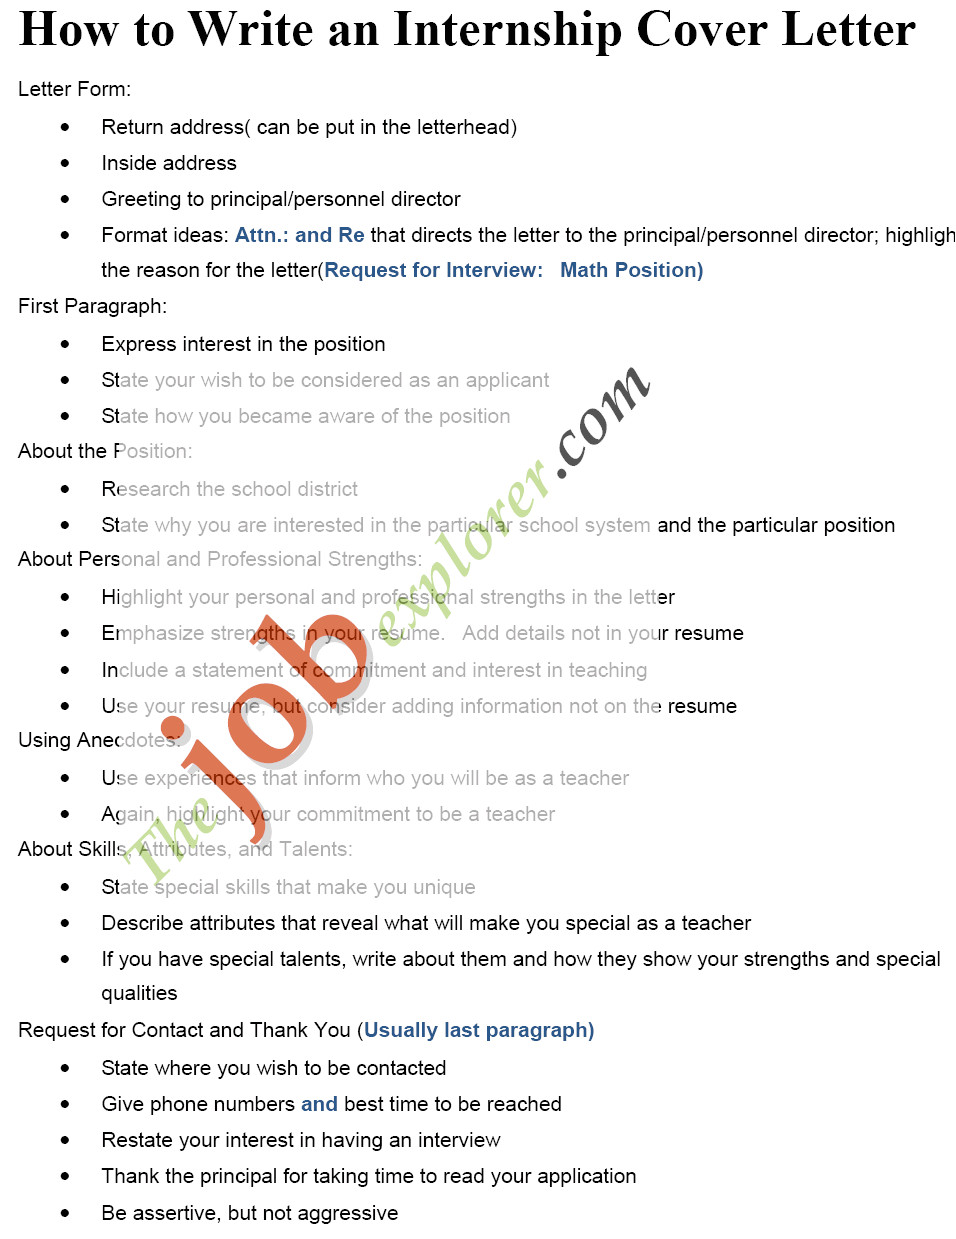 How to Write A Cover Letter for A Summer Internship Sample Internship Cover Letters